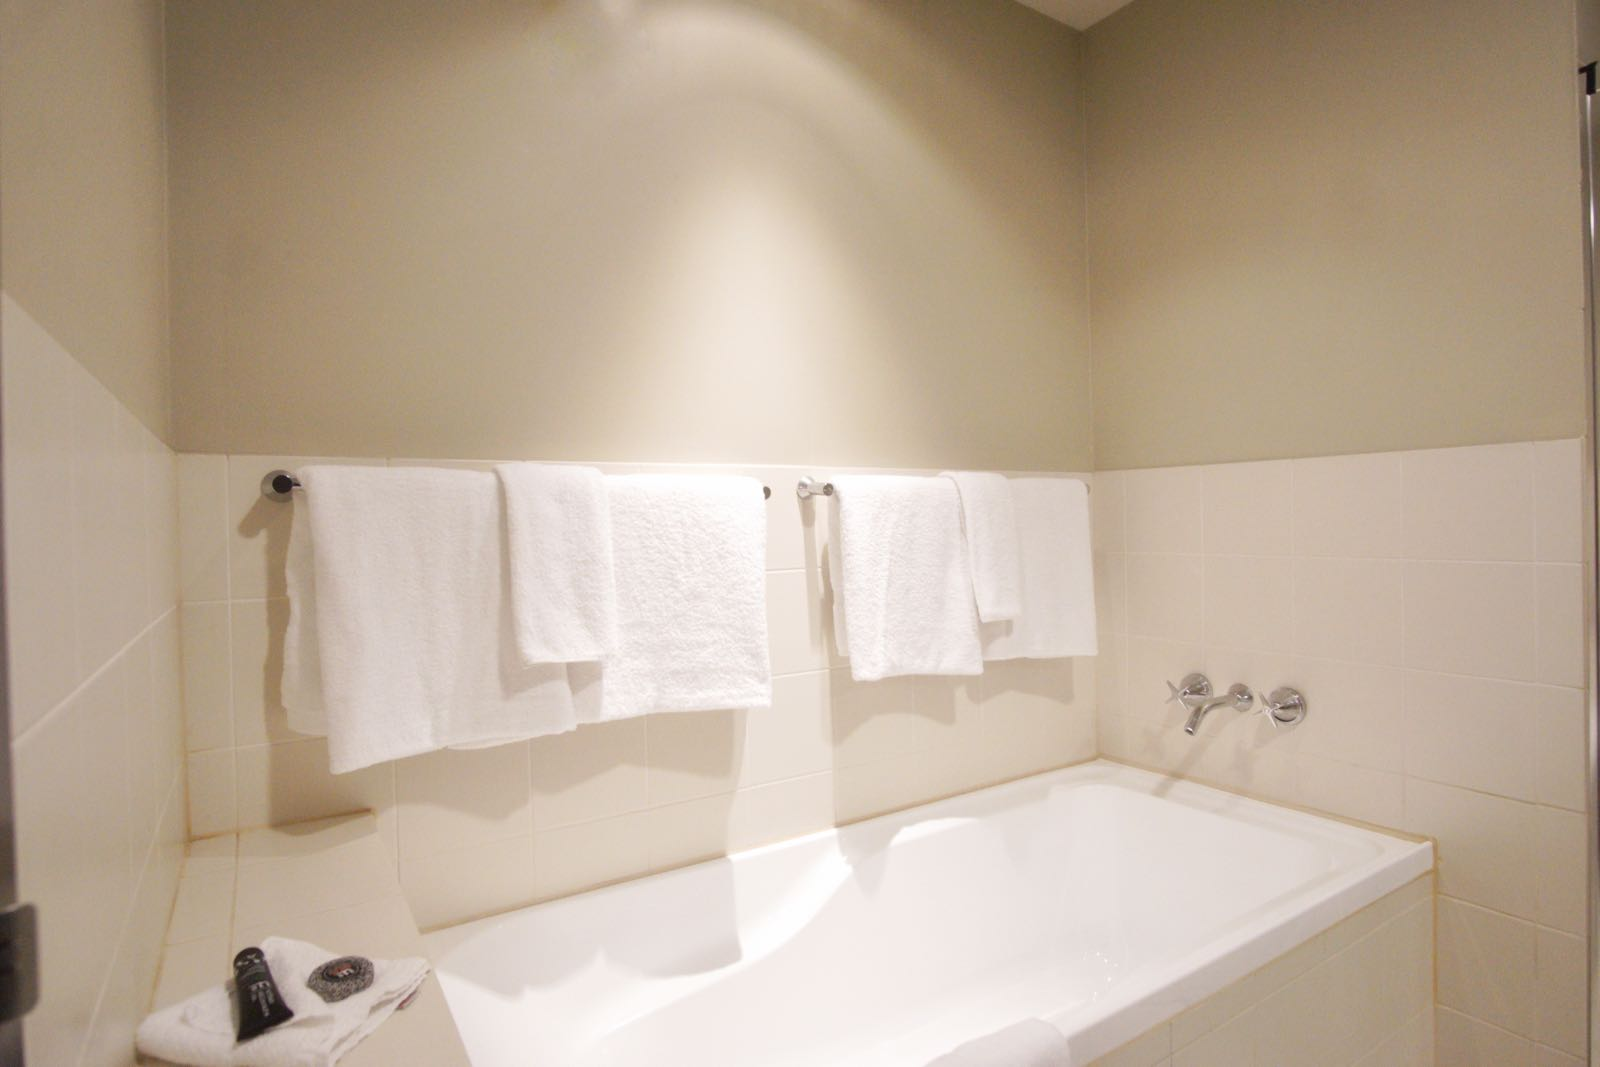 Bathtub Di Mantra Adelaide